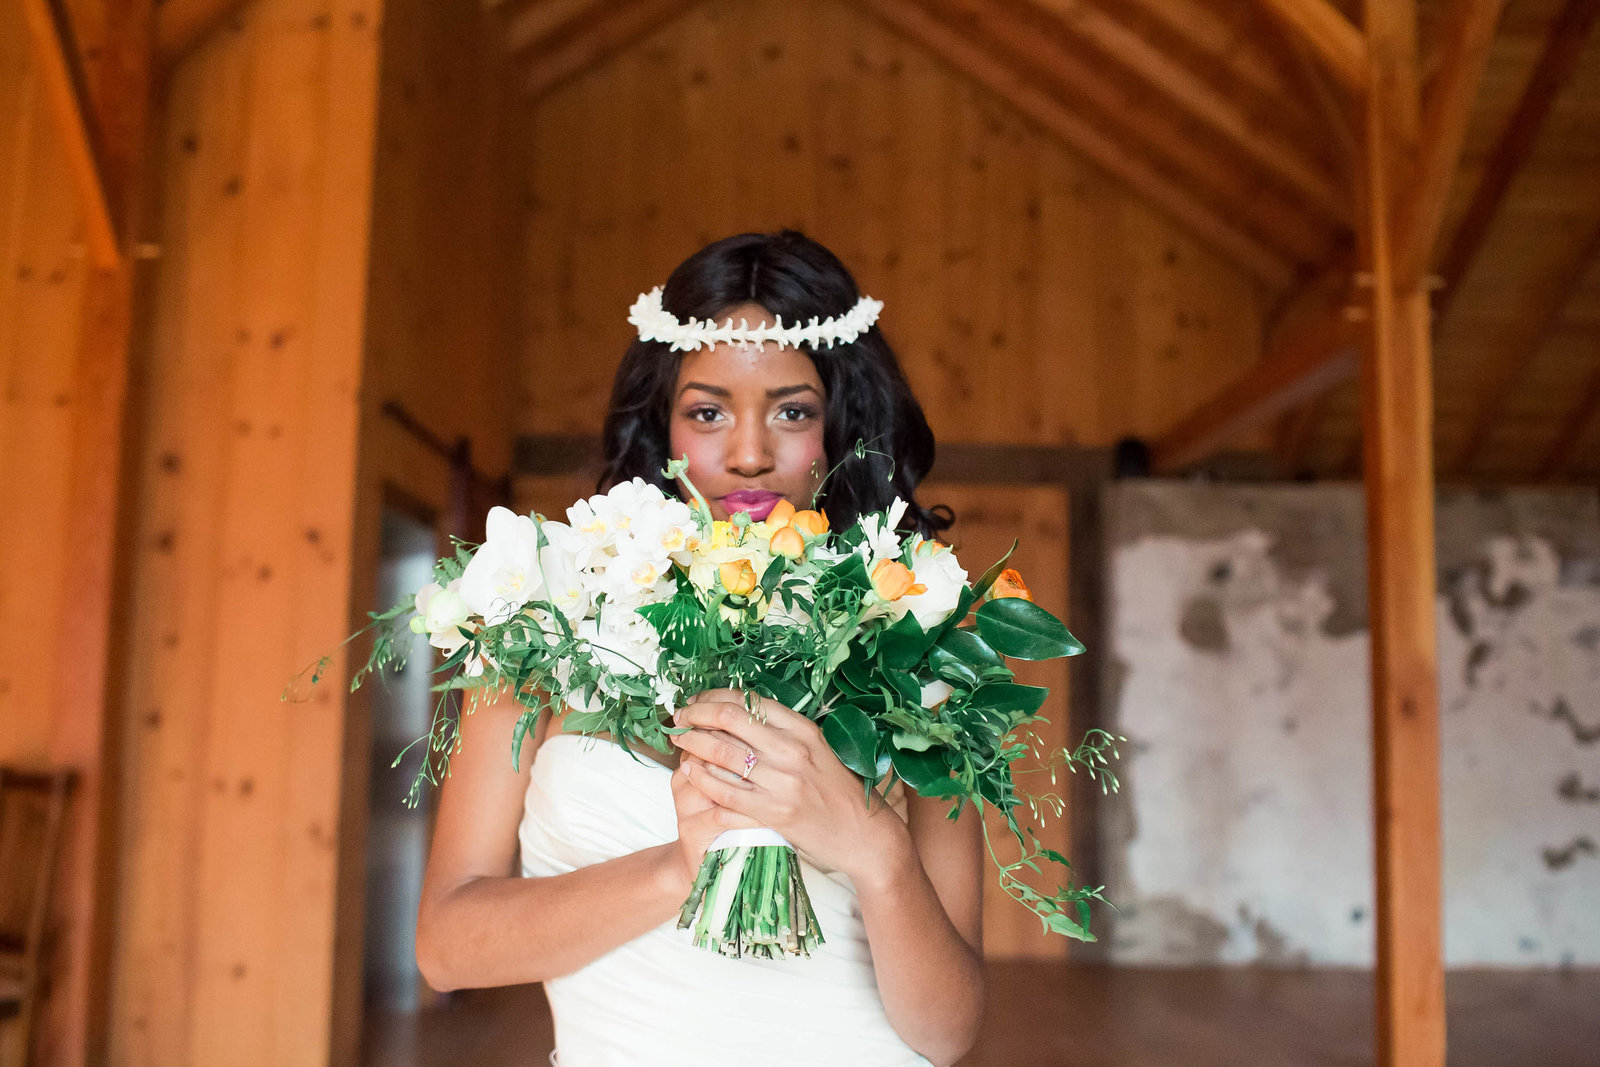 mikaella-crown-sweetwater-farm-winery-philadelphia-fashion-delaware-main-line-today-magazine-bridal-editorial-photography-kate-timbers223